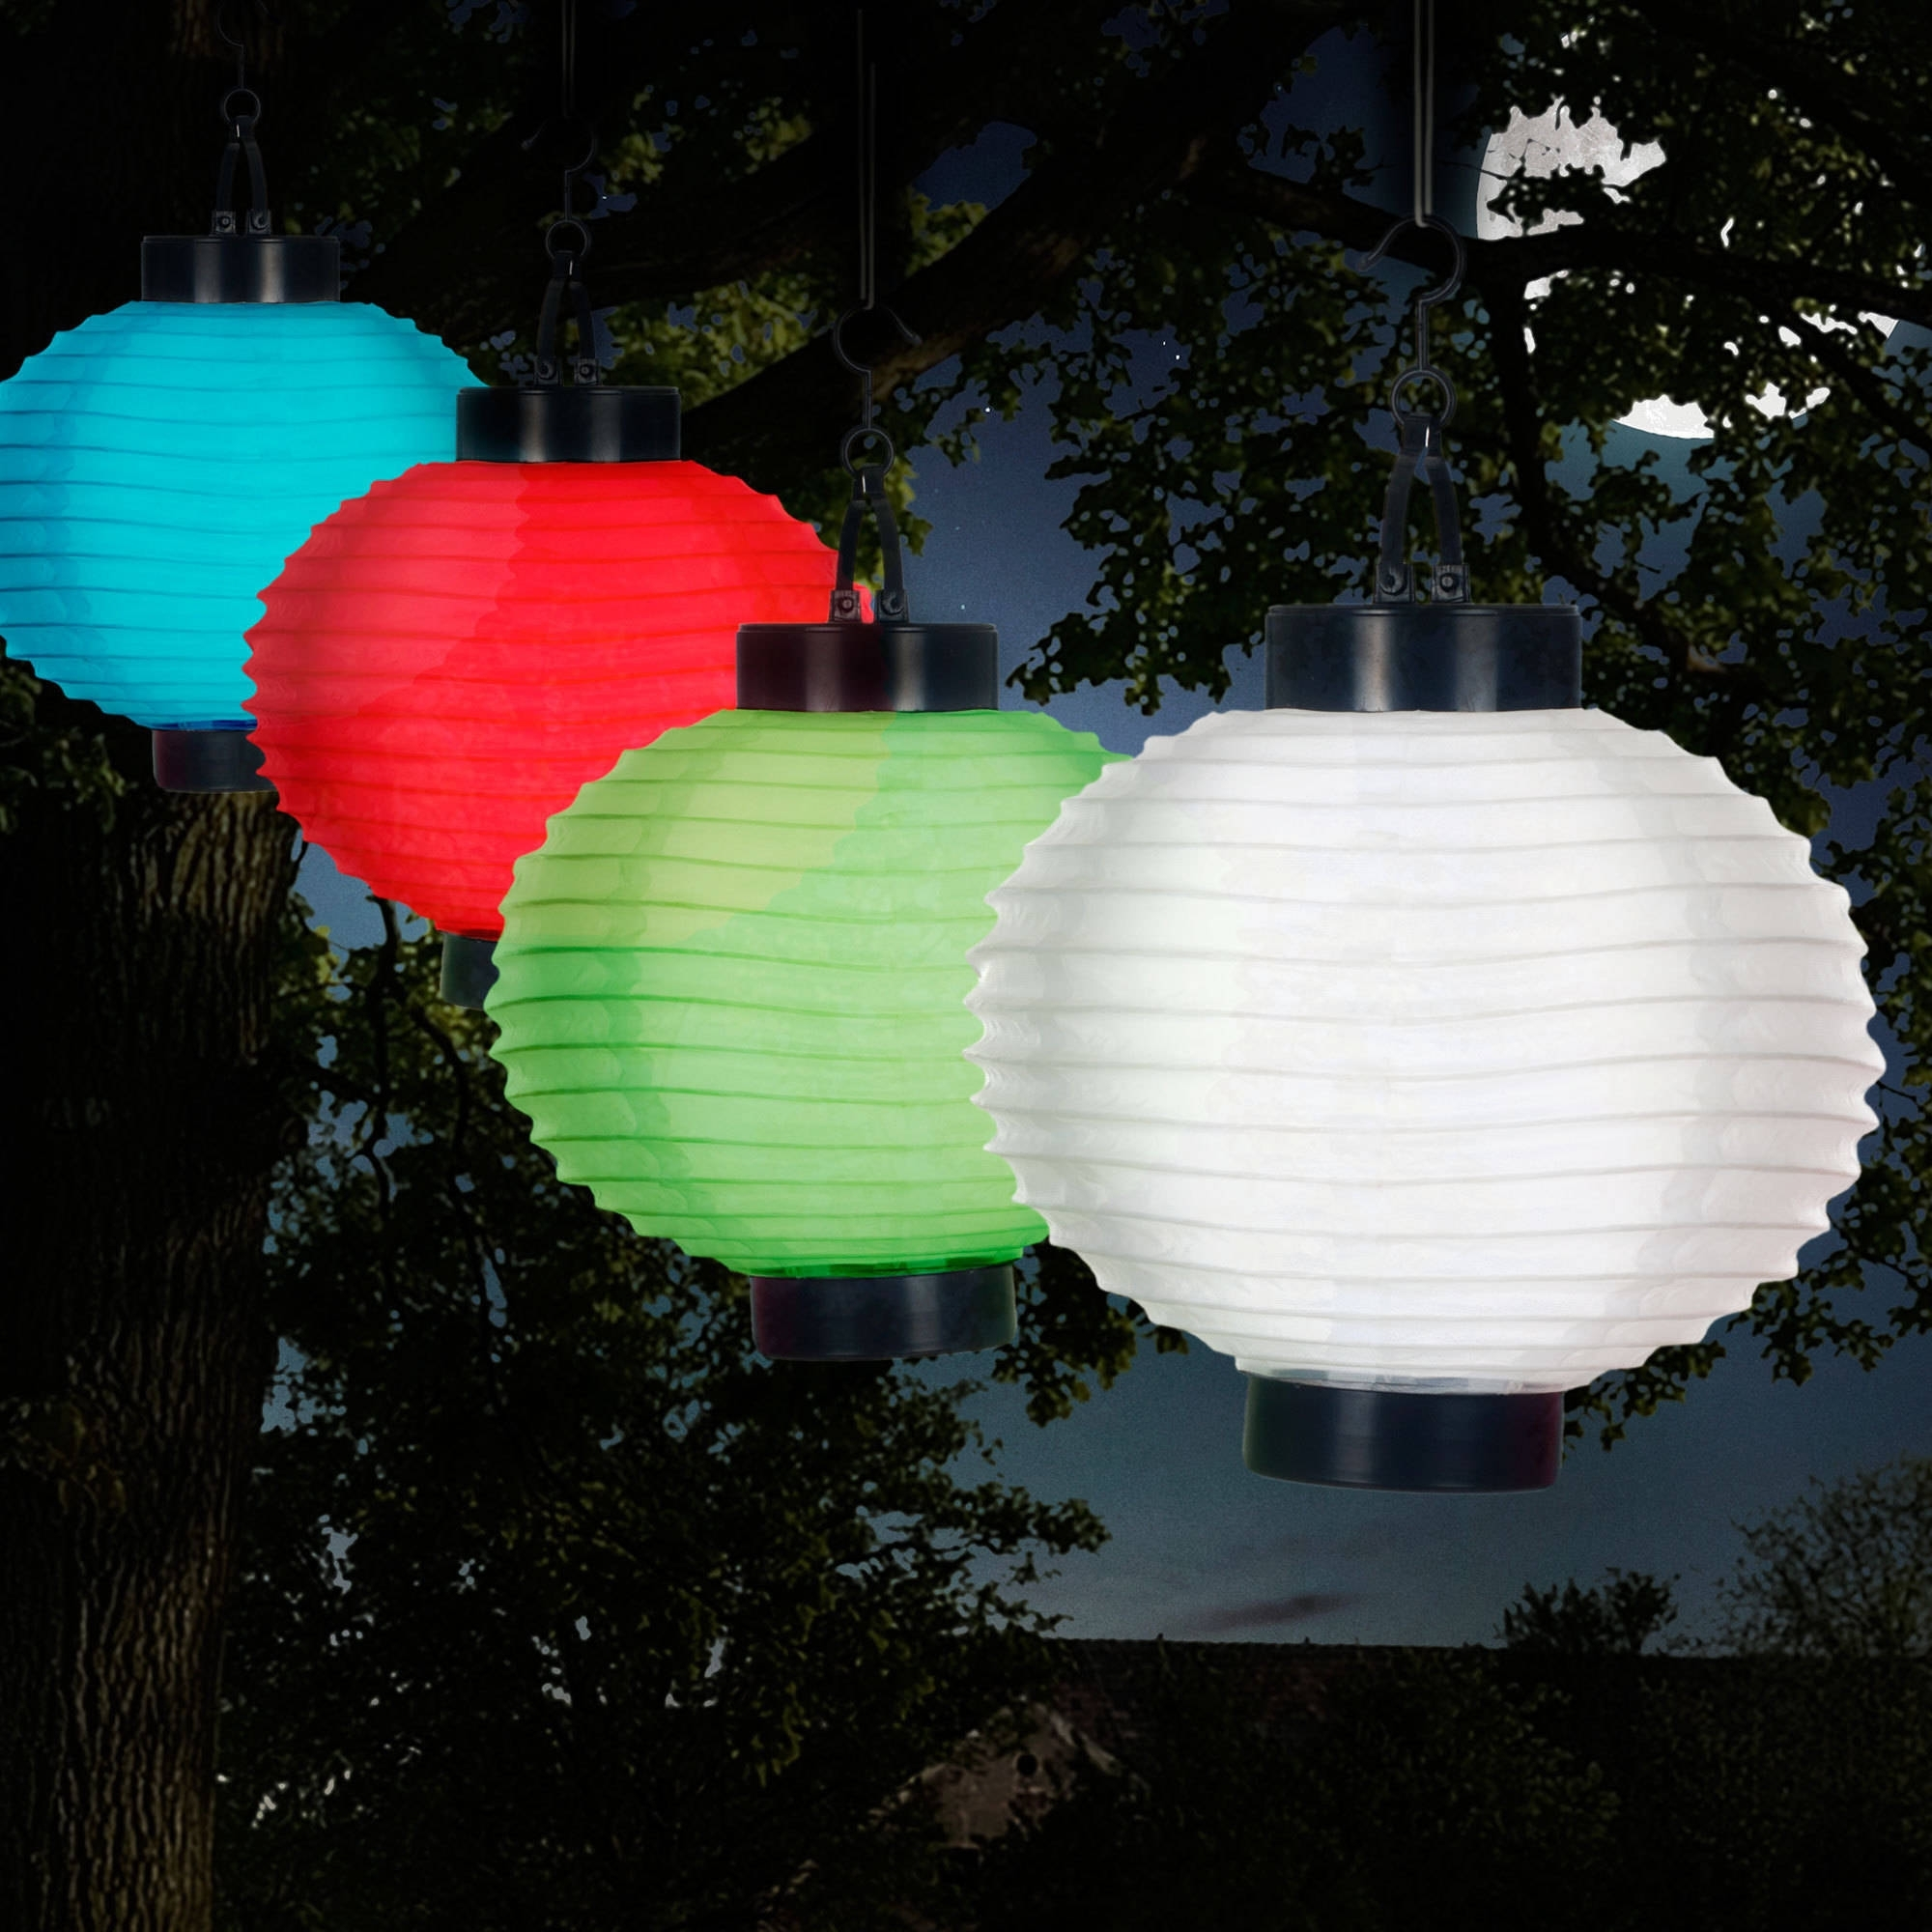 Outdoor Japanese Lanterns For Sale Intended For Well Liked Pure Garden Outdoor Solar Chinese Lanterns, Led, Set Of 4 – Walmart (View 11 of 20)